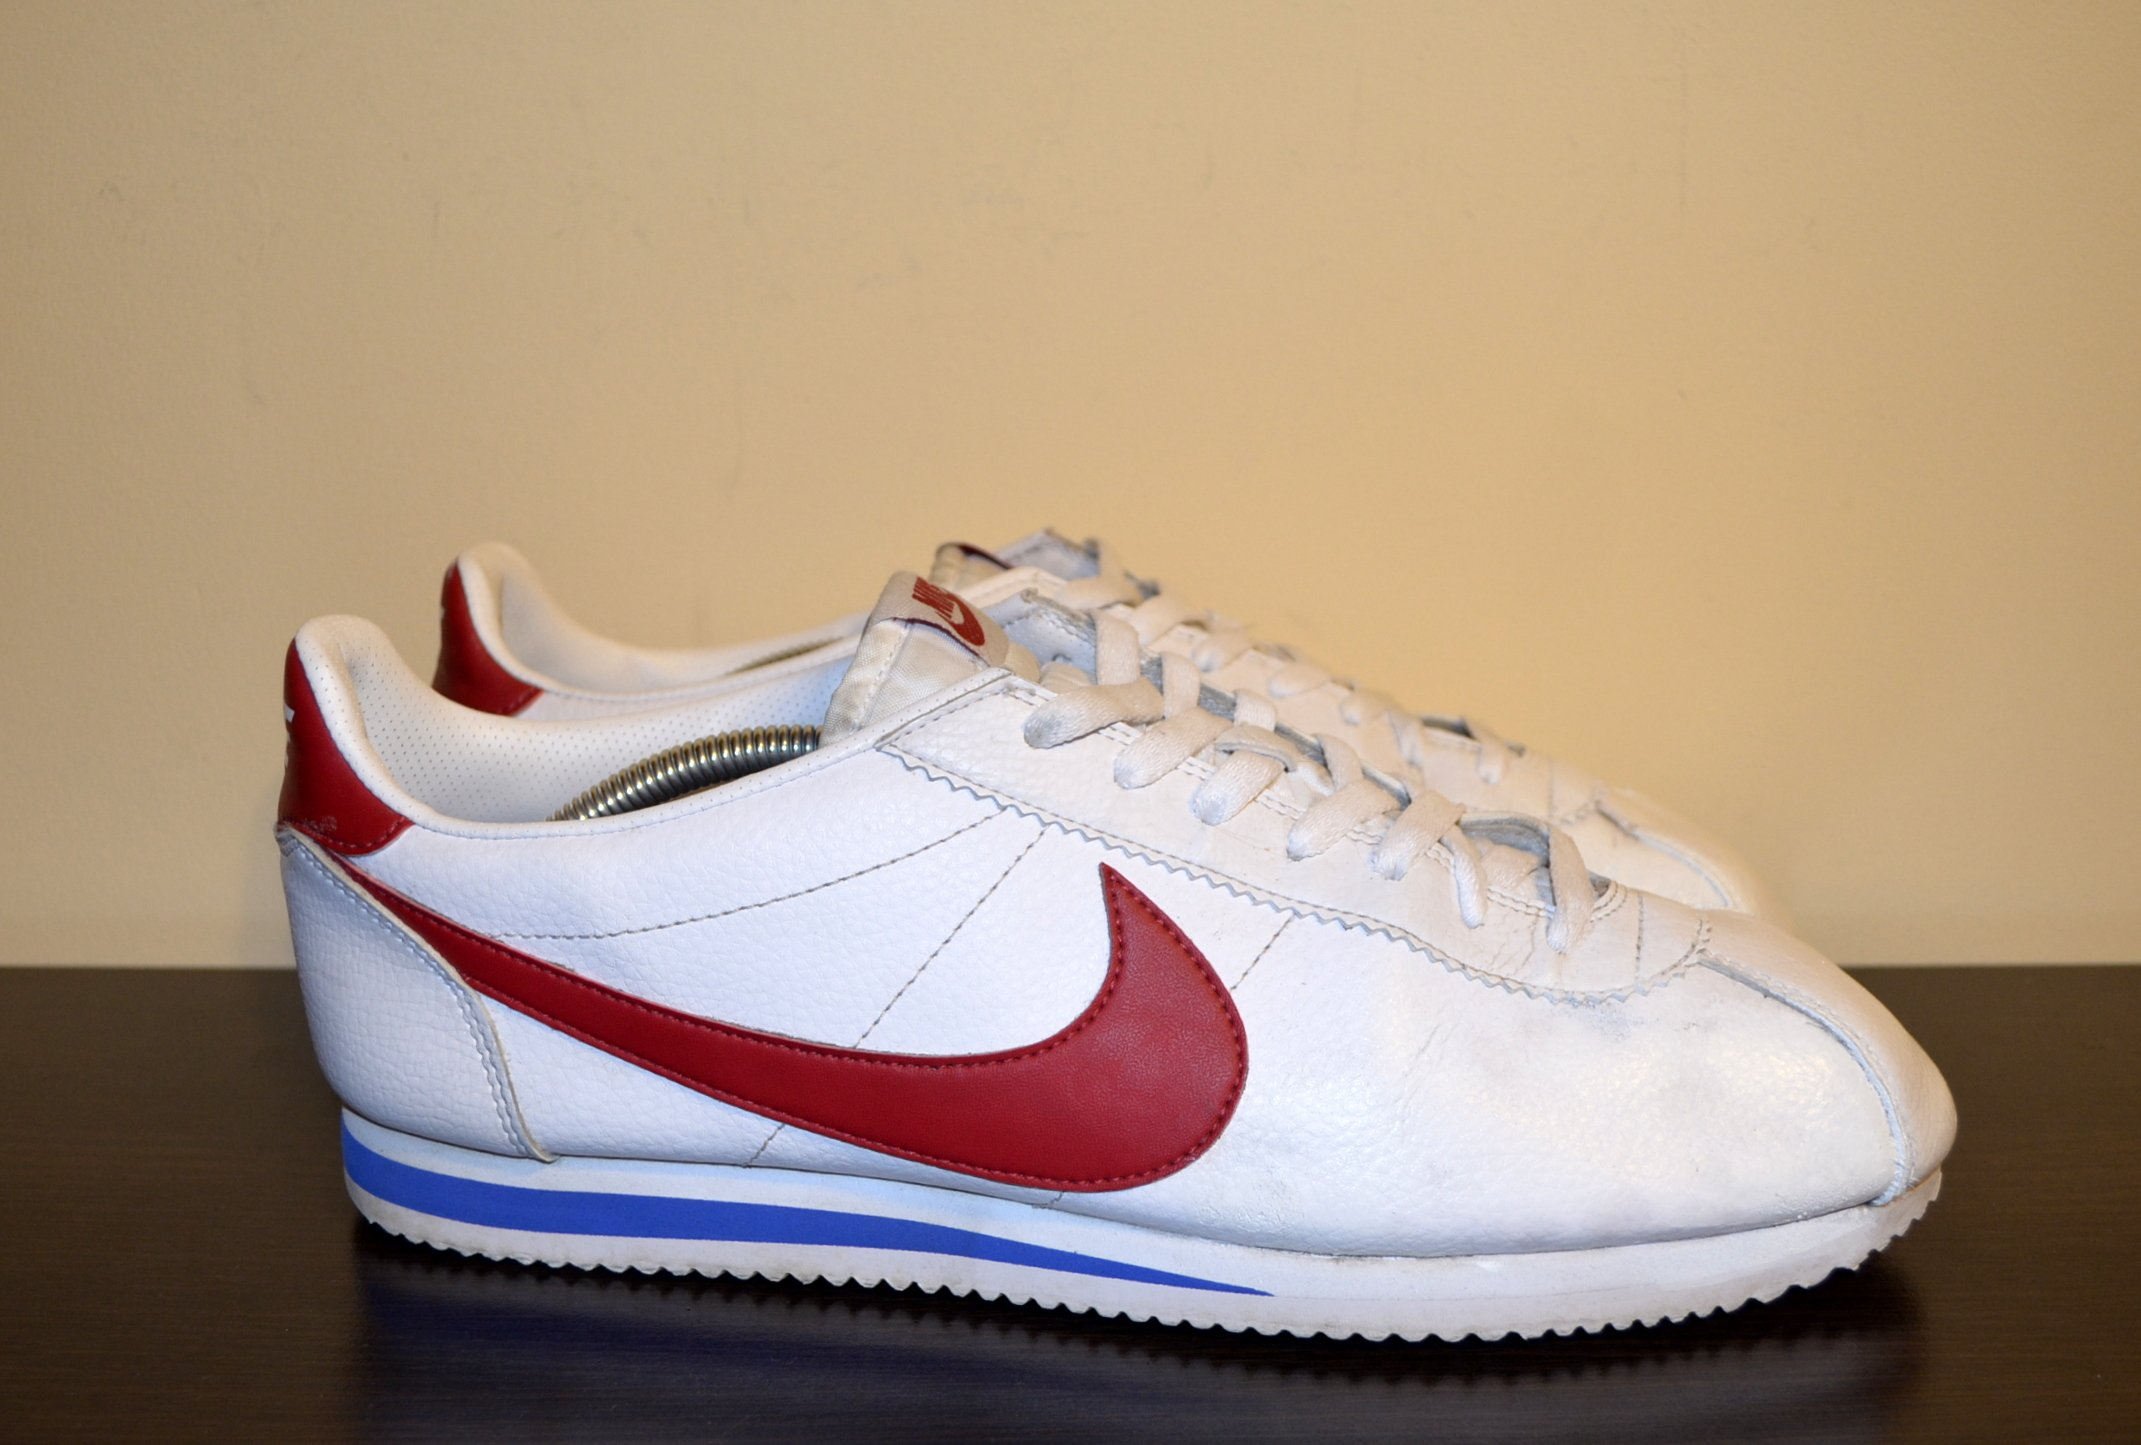 low priced 9f582 97991 ... clearance buty sportowe nike classic cortez forrest gump 46 f1869 5676a